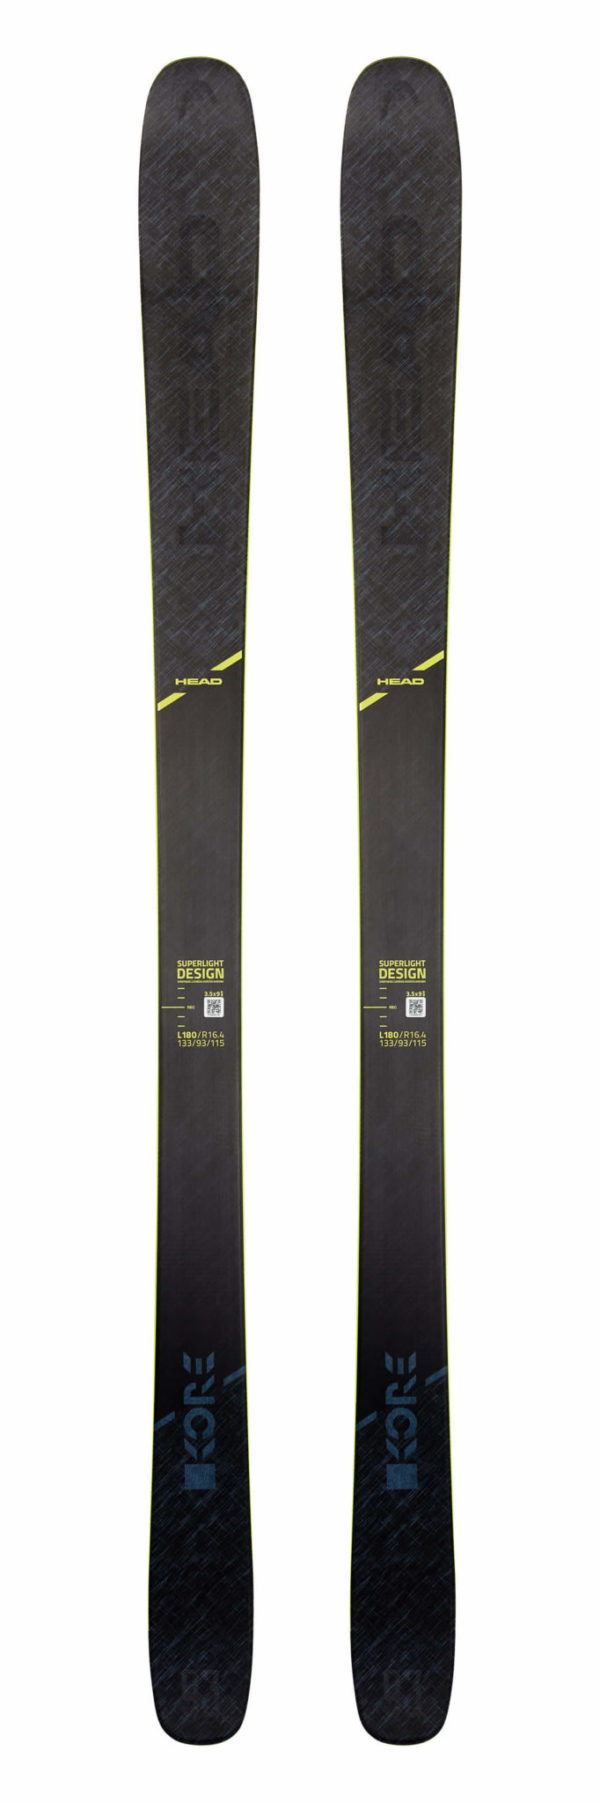 Head Kore 93 Skis (Flat) 2019-20 at Northern Ski Works